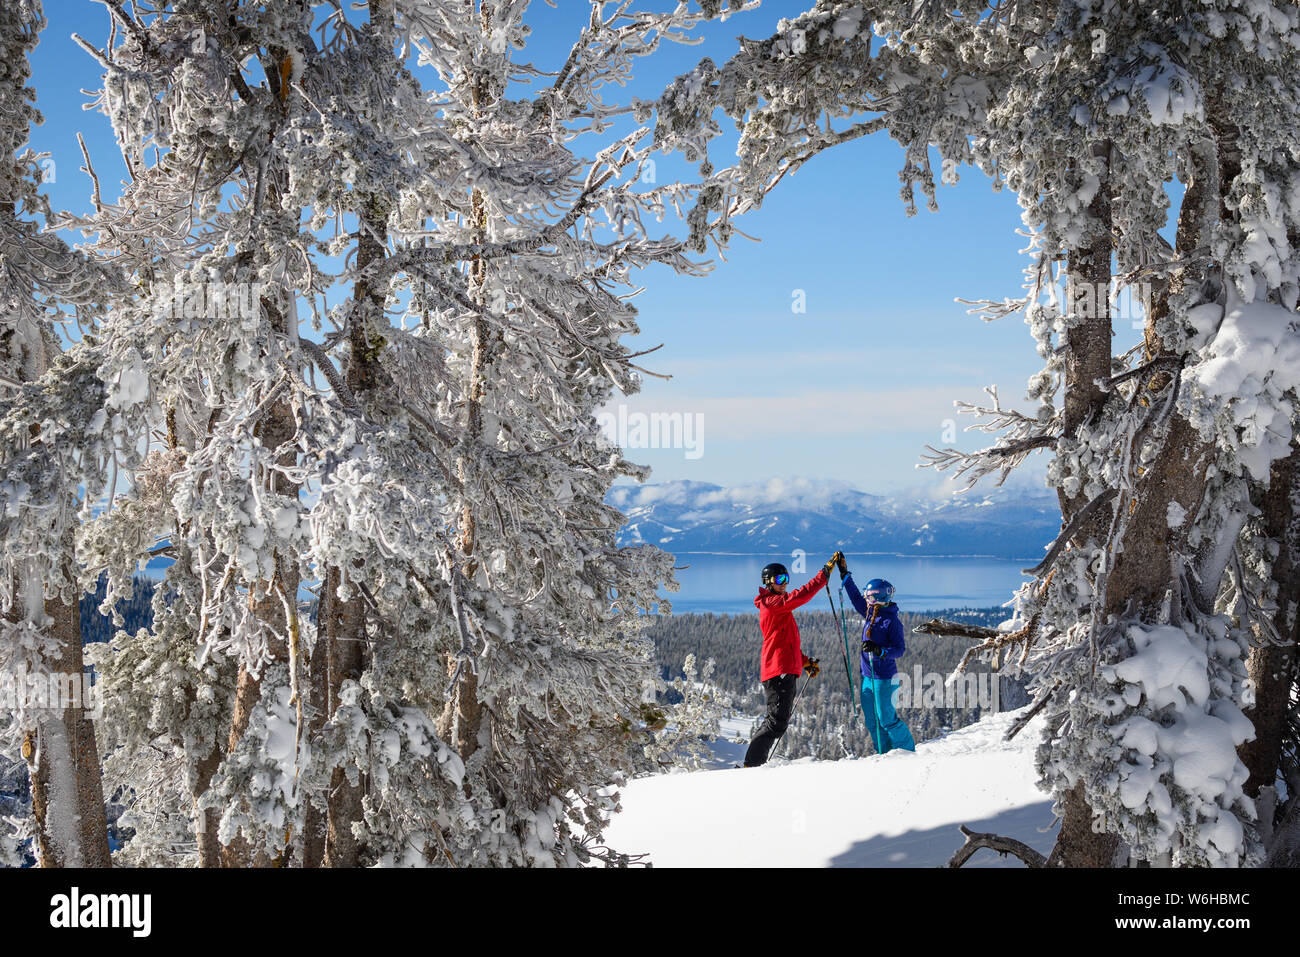 Skiing and snowboarding at Mt. Rose Ski Tahoe with fresh snow and Lake Tahoe views. Stock Photo